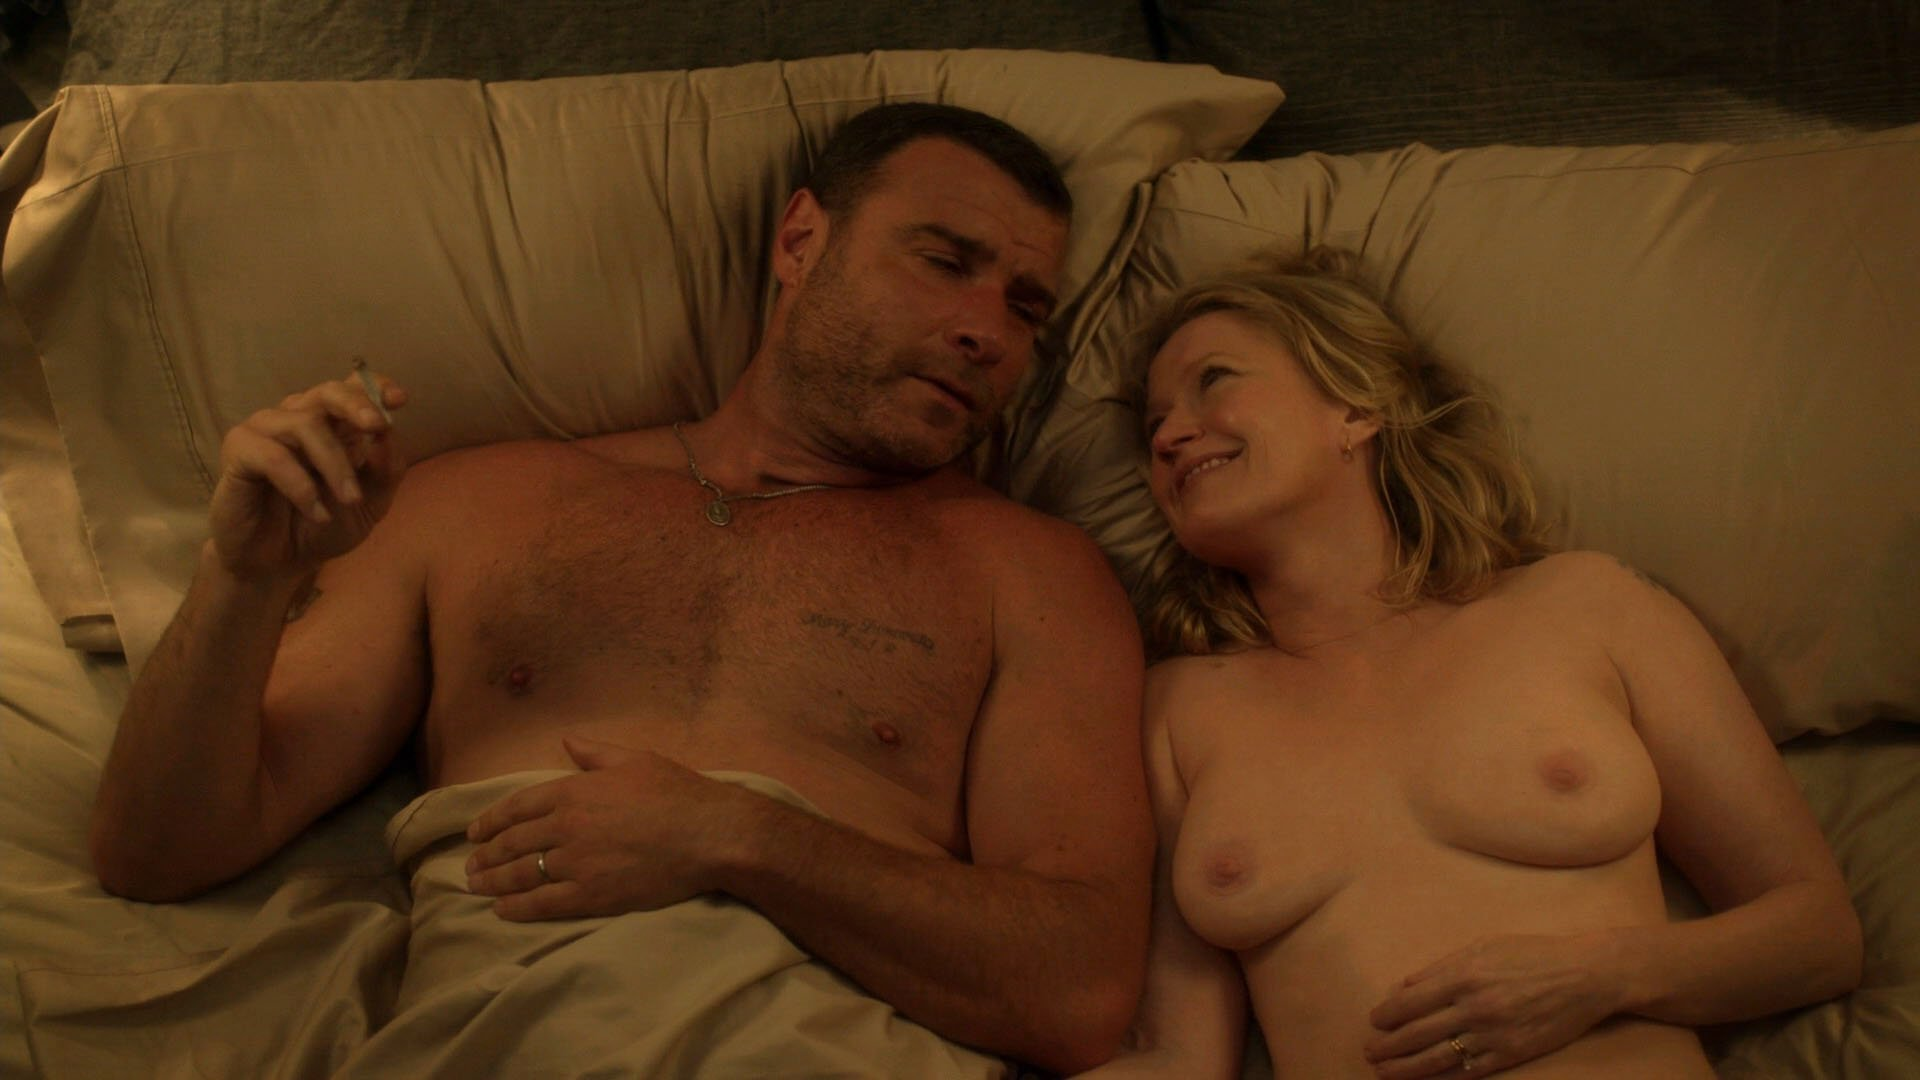 Paula malcomson nude pictures apologise, but